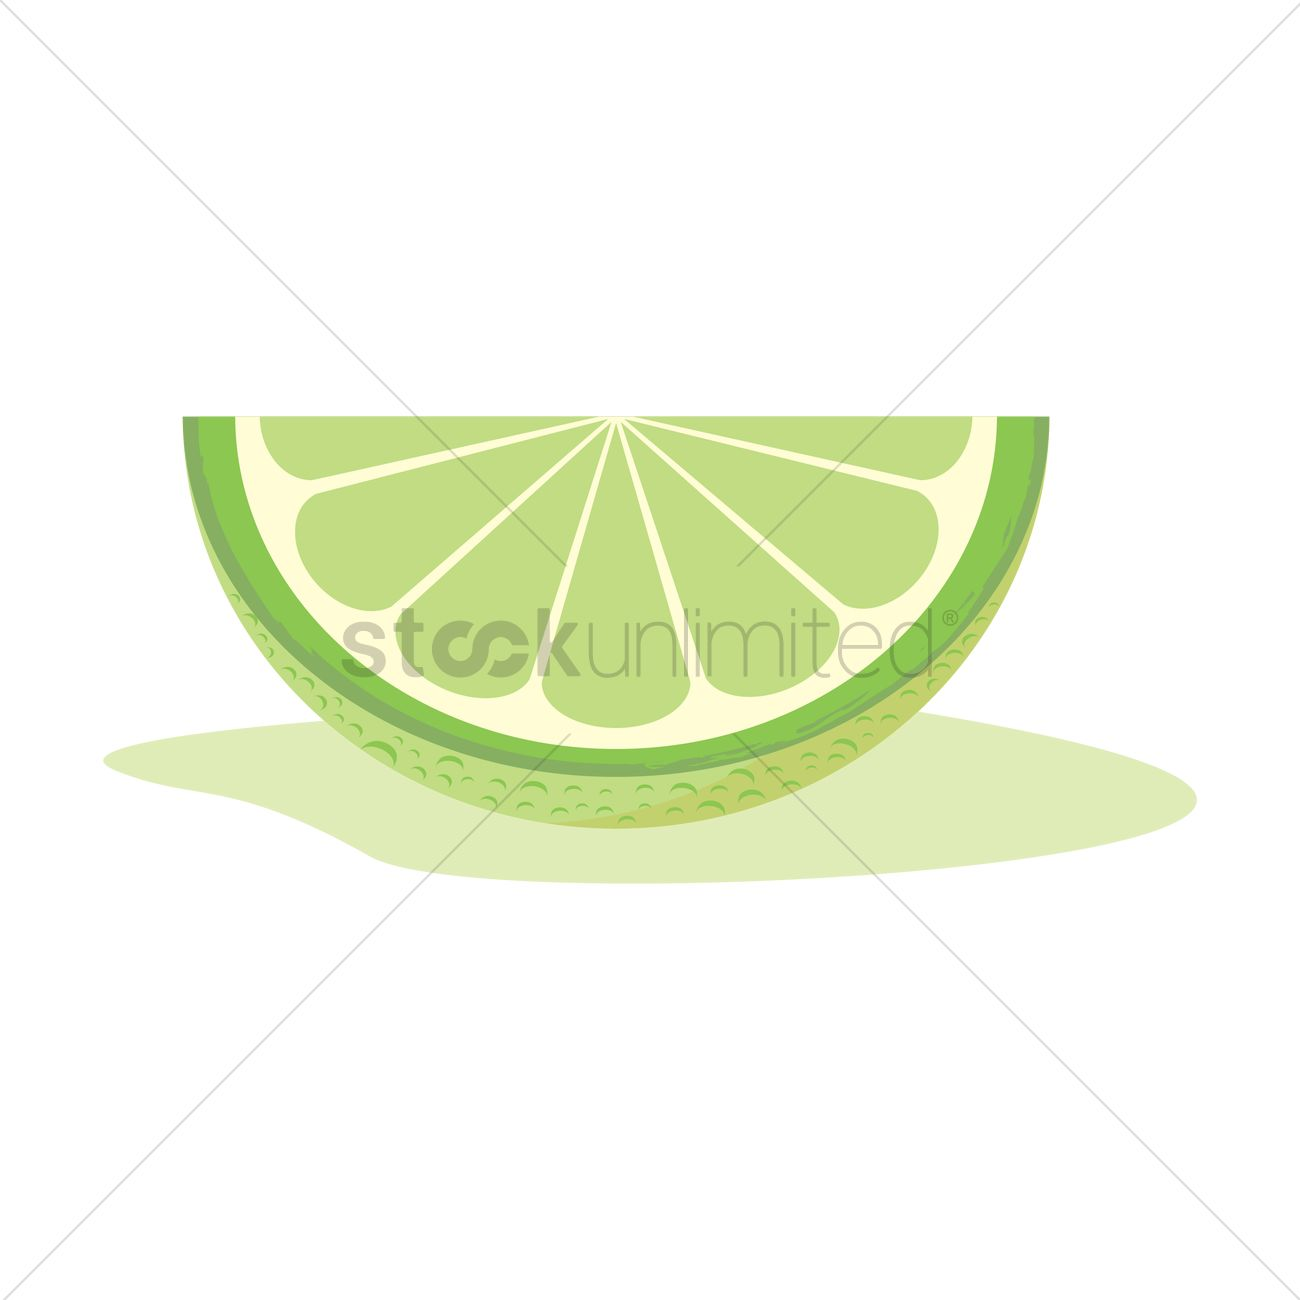 Lime wedge clipart 2 » Clipart Station.